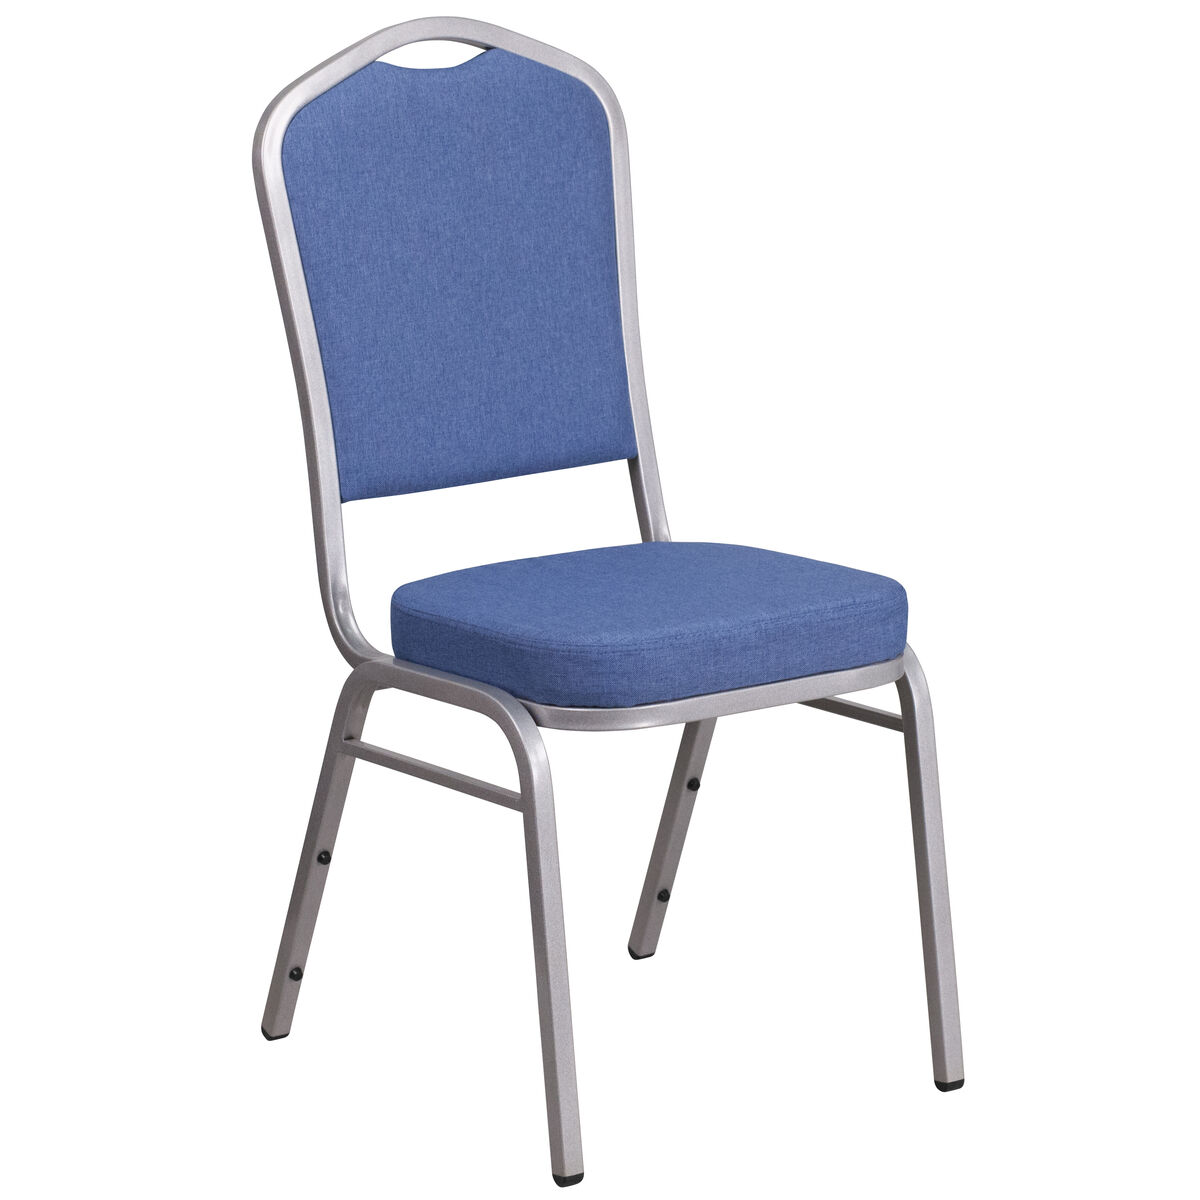 Crown Back Stacking Banquet Chair in Blue Fabric - Silver Frame